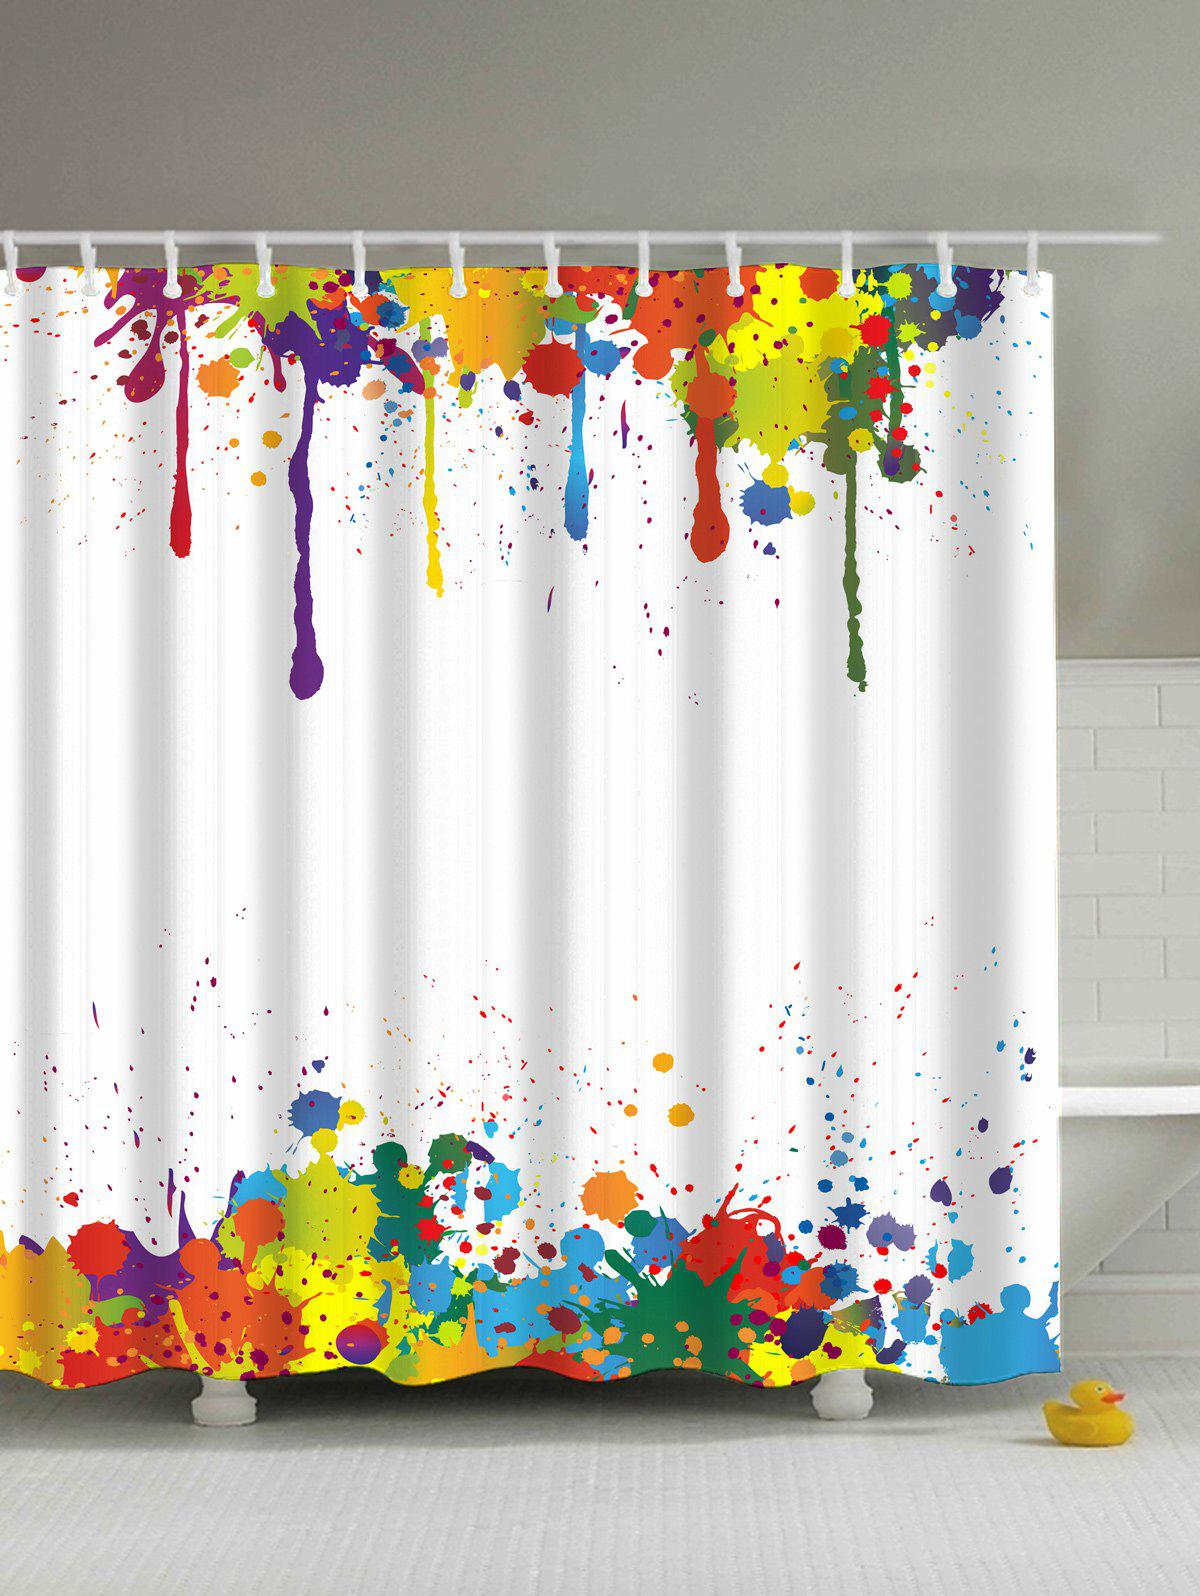 Colorful shower curtain - Colorful Paint Splatter Waterproof Polyester Shower Curtain Colormix